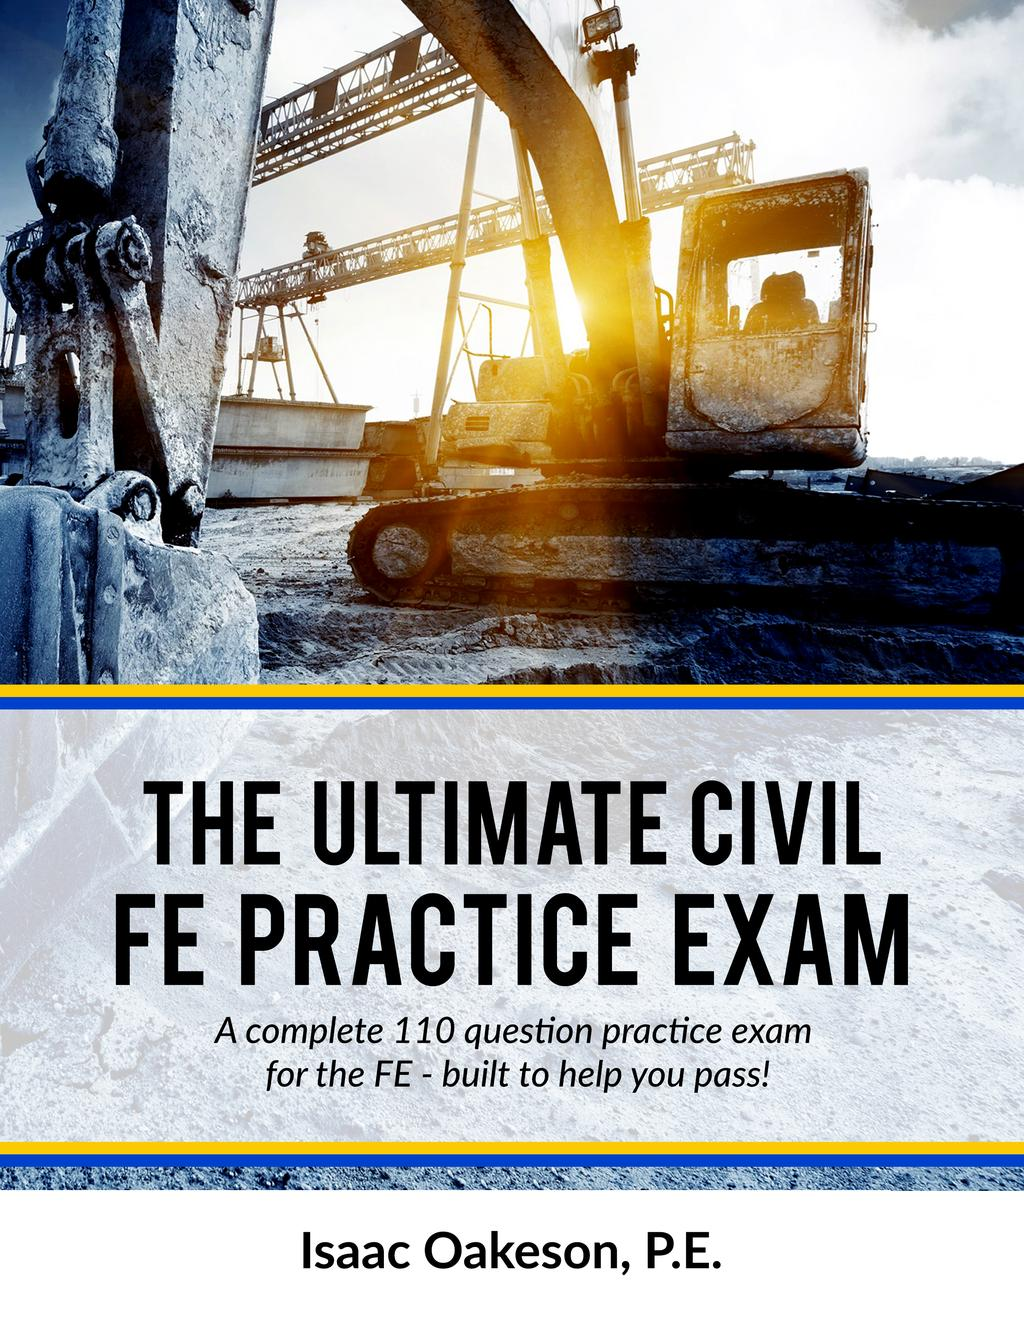 Fe Civil Practice Exam Pdf Free Download